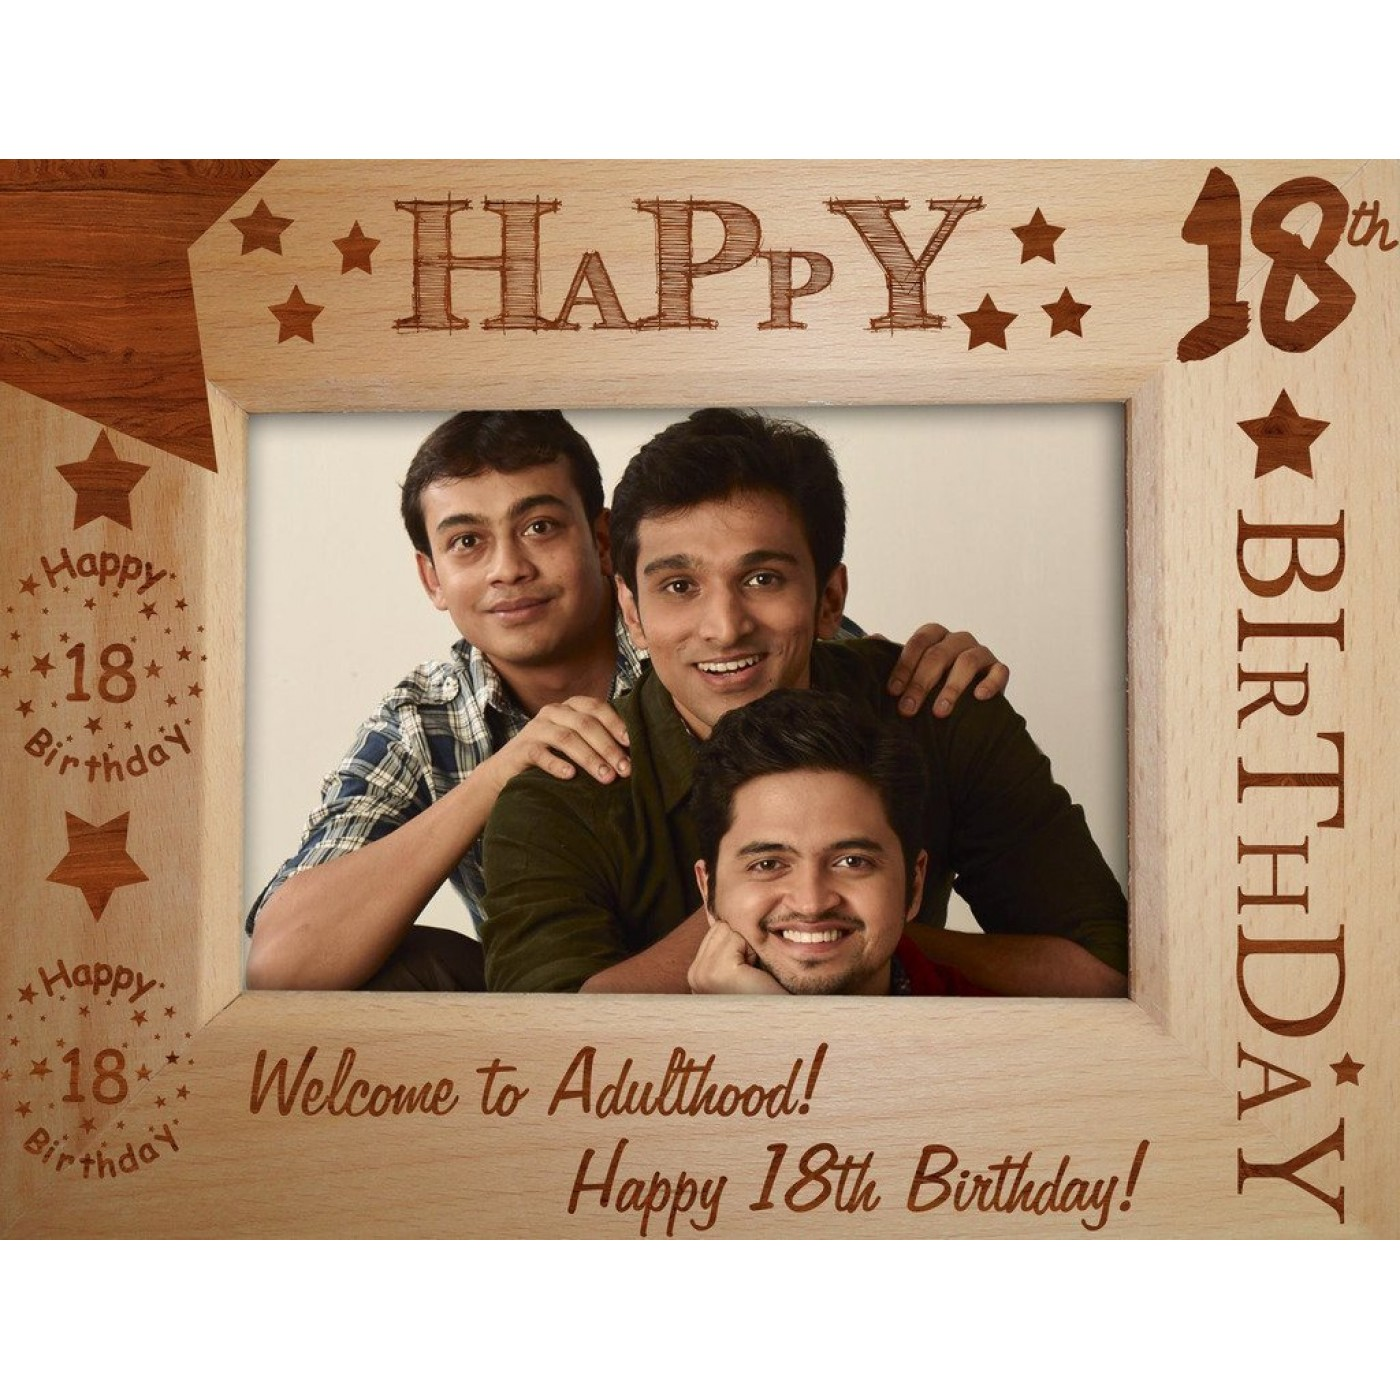 18th birthday photo frame ; 131-1400x1400